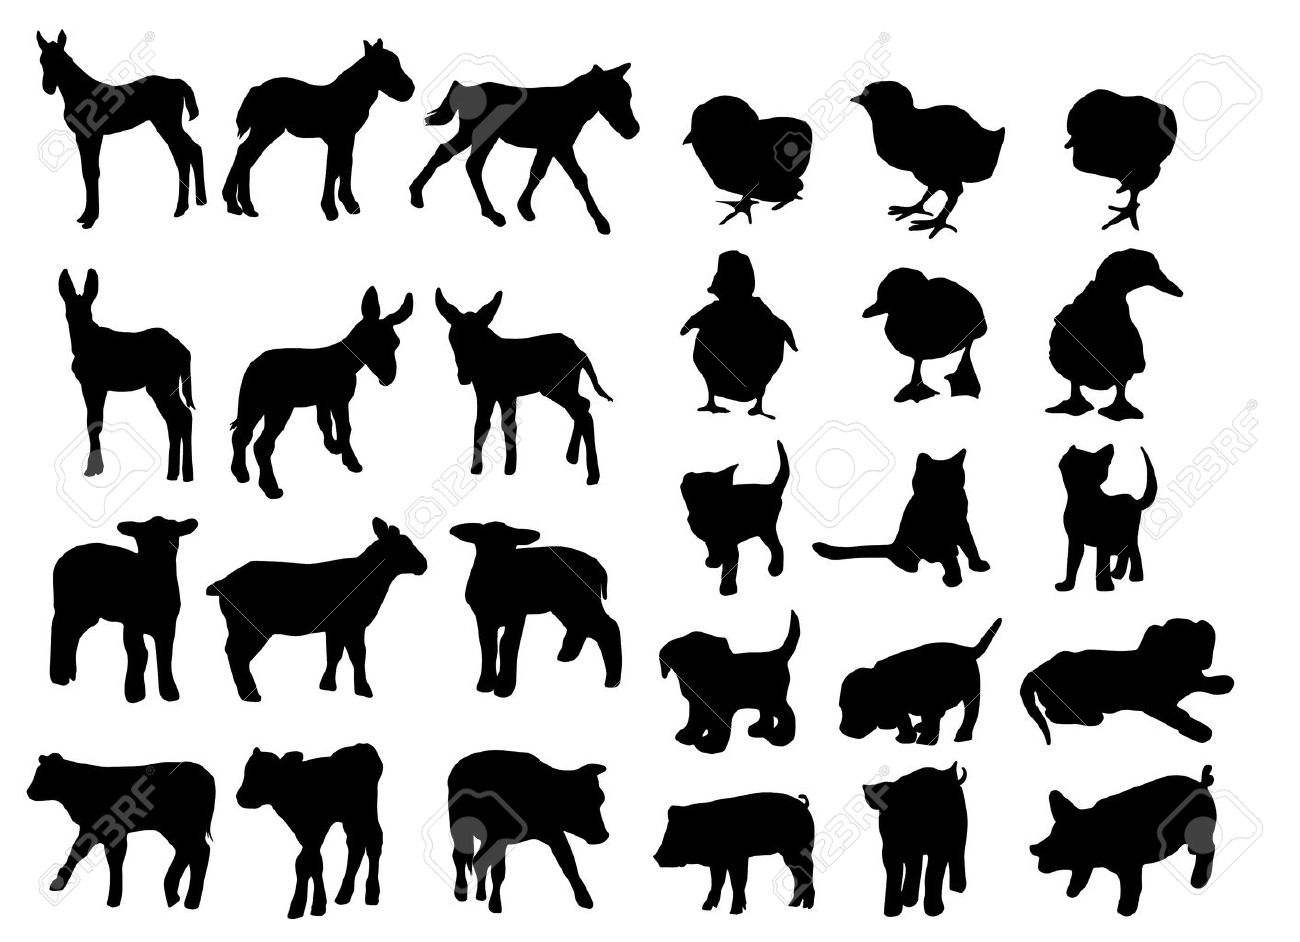 Baby Animal Silhouette Clip Art.